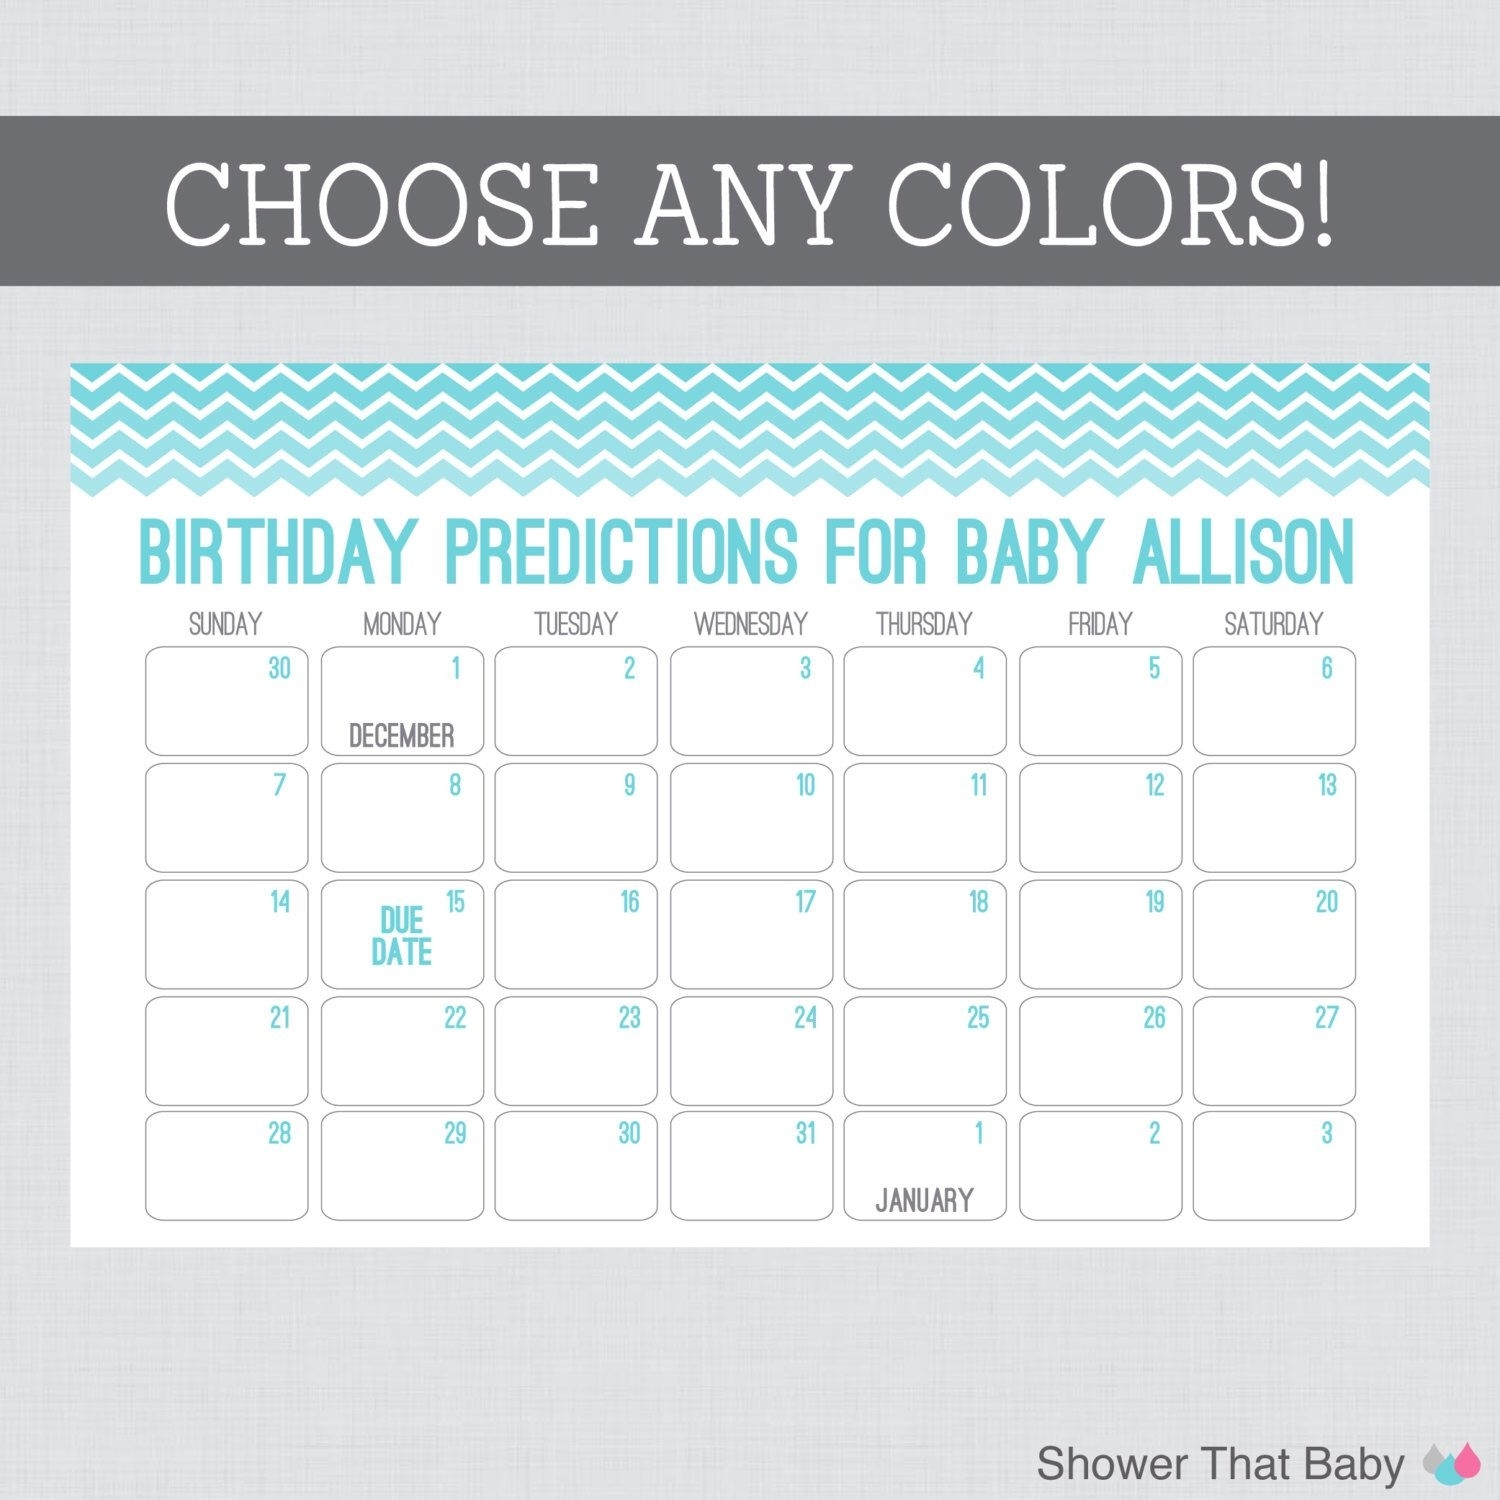 Baby Birthday Predictions Printable Chevron Baby Shower